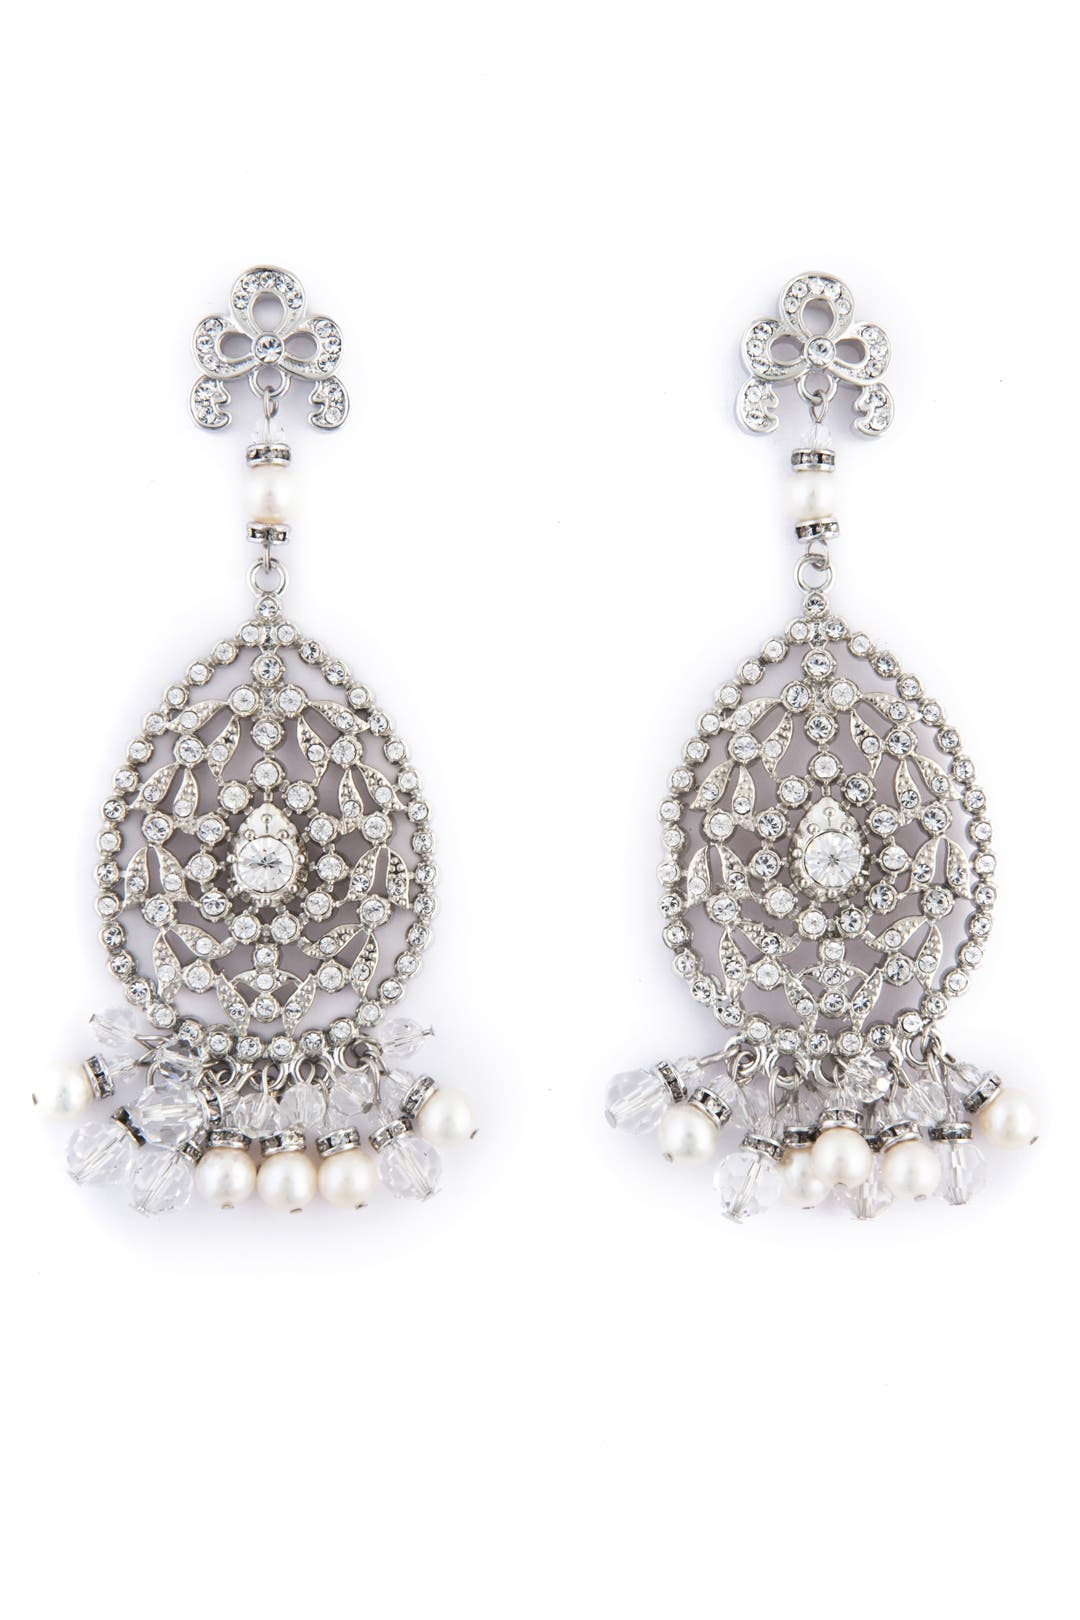 Chandelier of Elegance Earrings by Badgley Mischka Jewelry